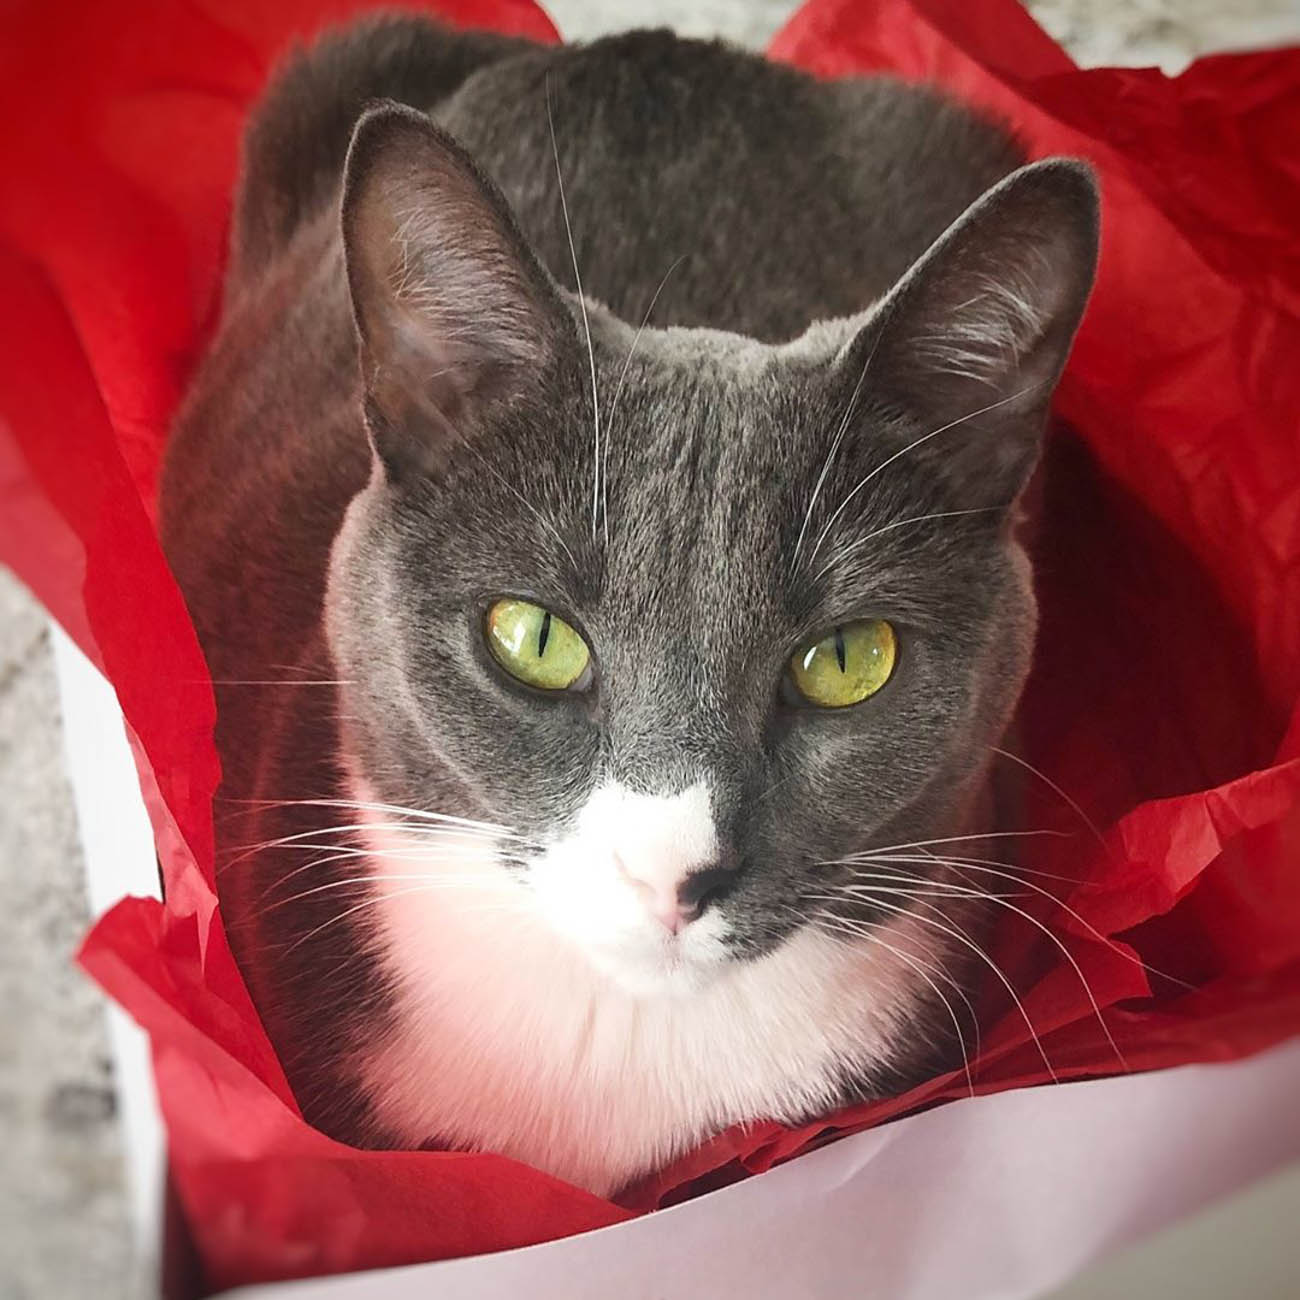 <p>Pips (short for Pippi) likes to hangout in Christmas boxes during the holidays because, surprise, SHE'S the gift. / Image courtesy of Instagram user @sister_whiskers_cincy // Published: 1.13.19</p>